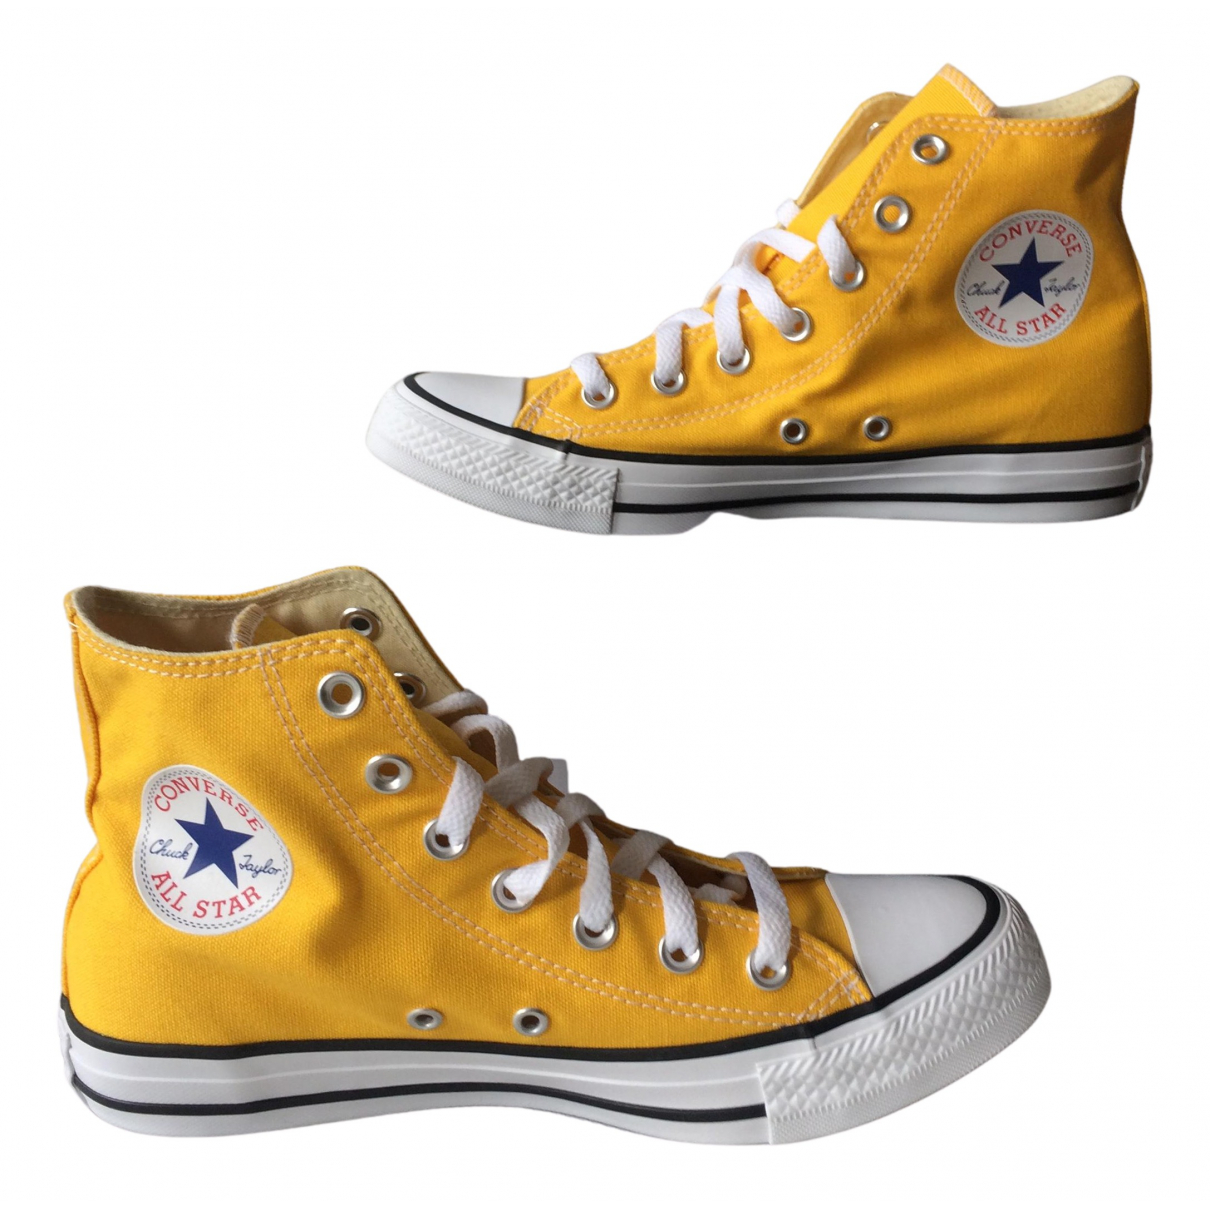 Converse N Yellow Cloth Trainers for Women 7.5 US